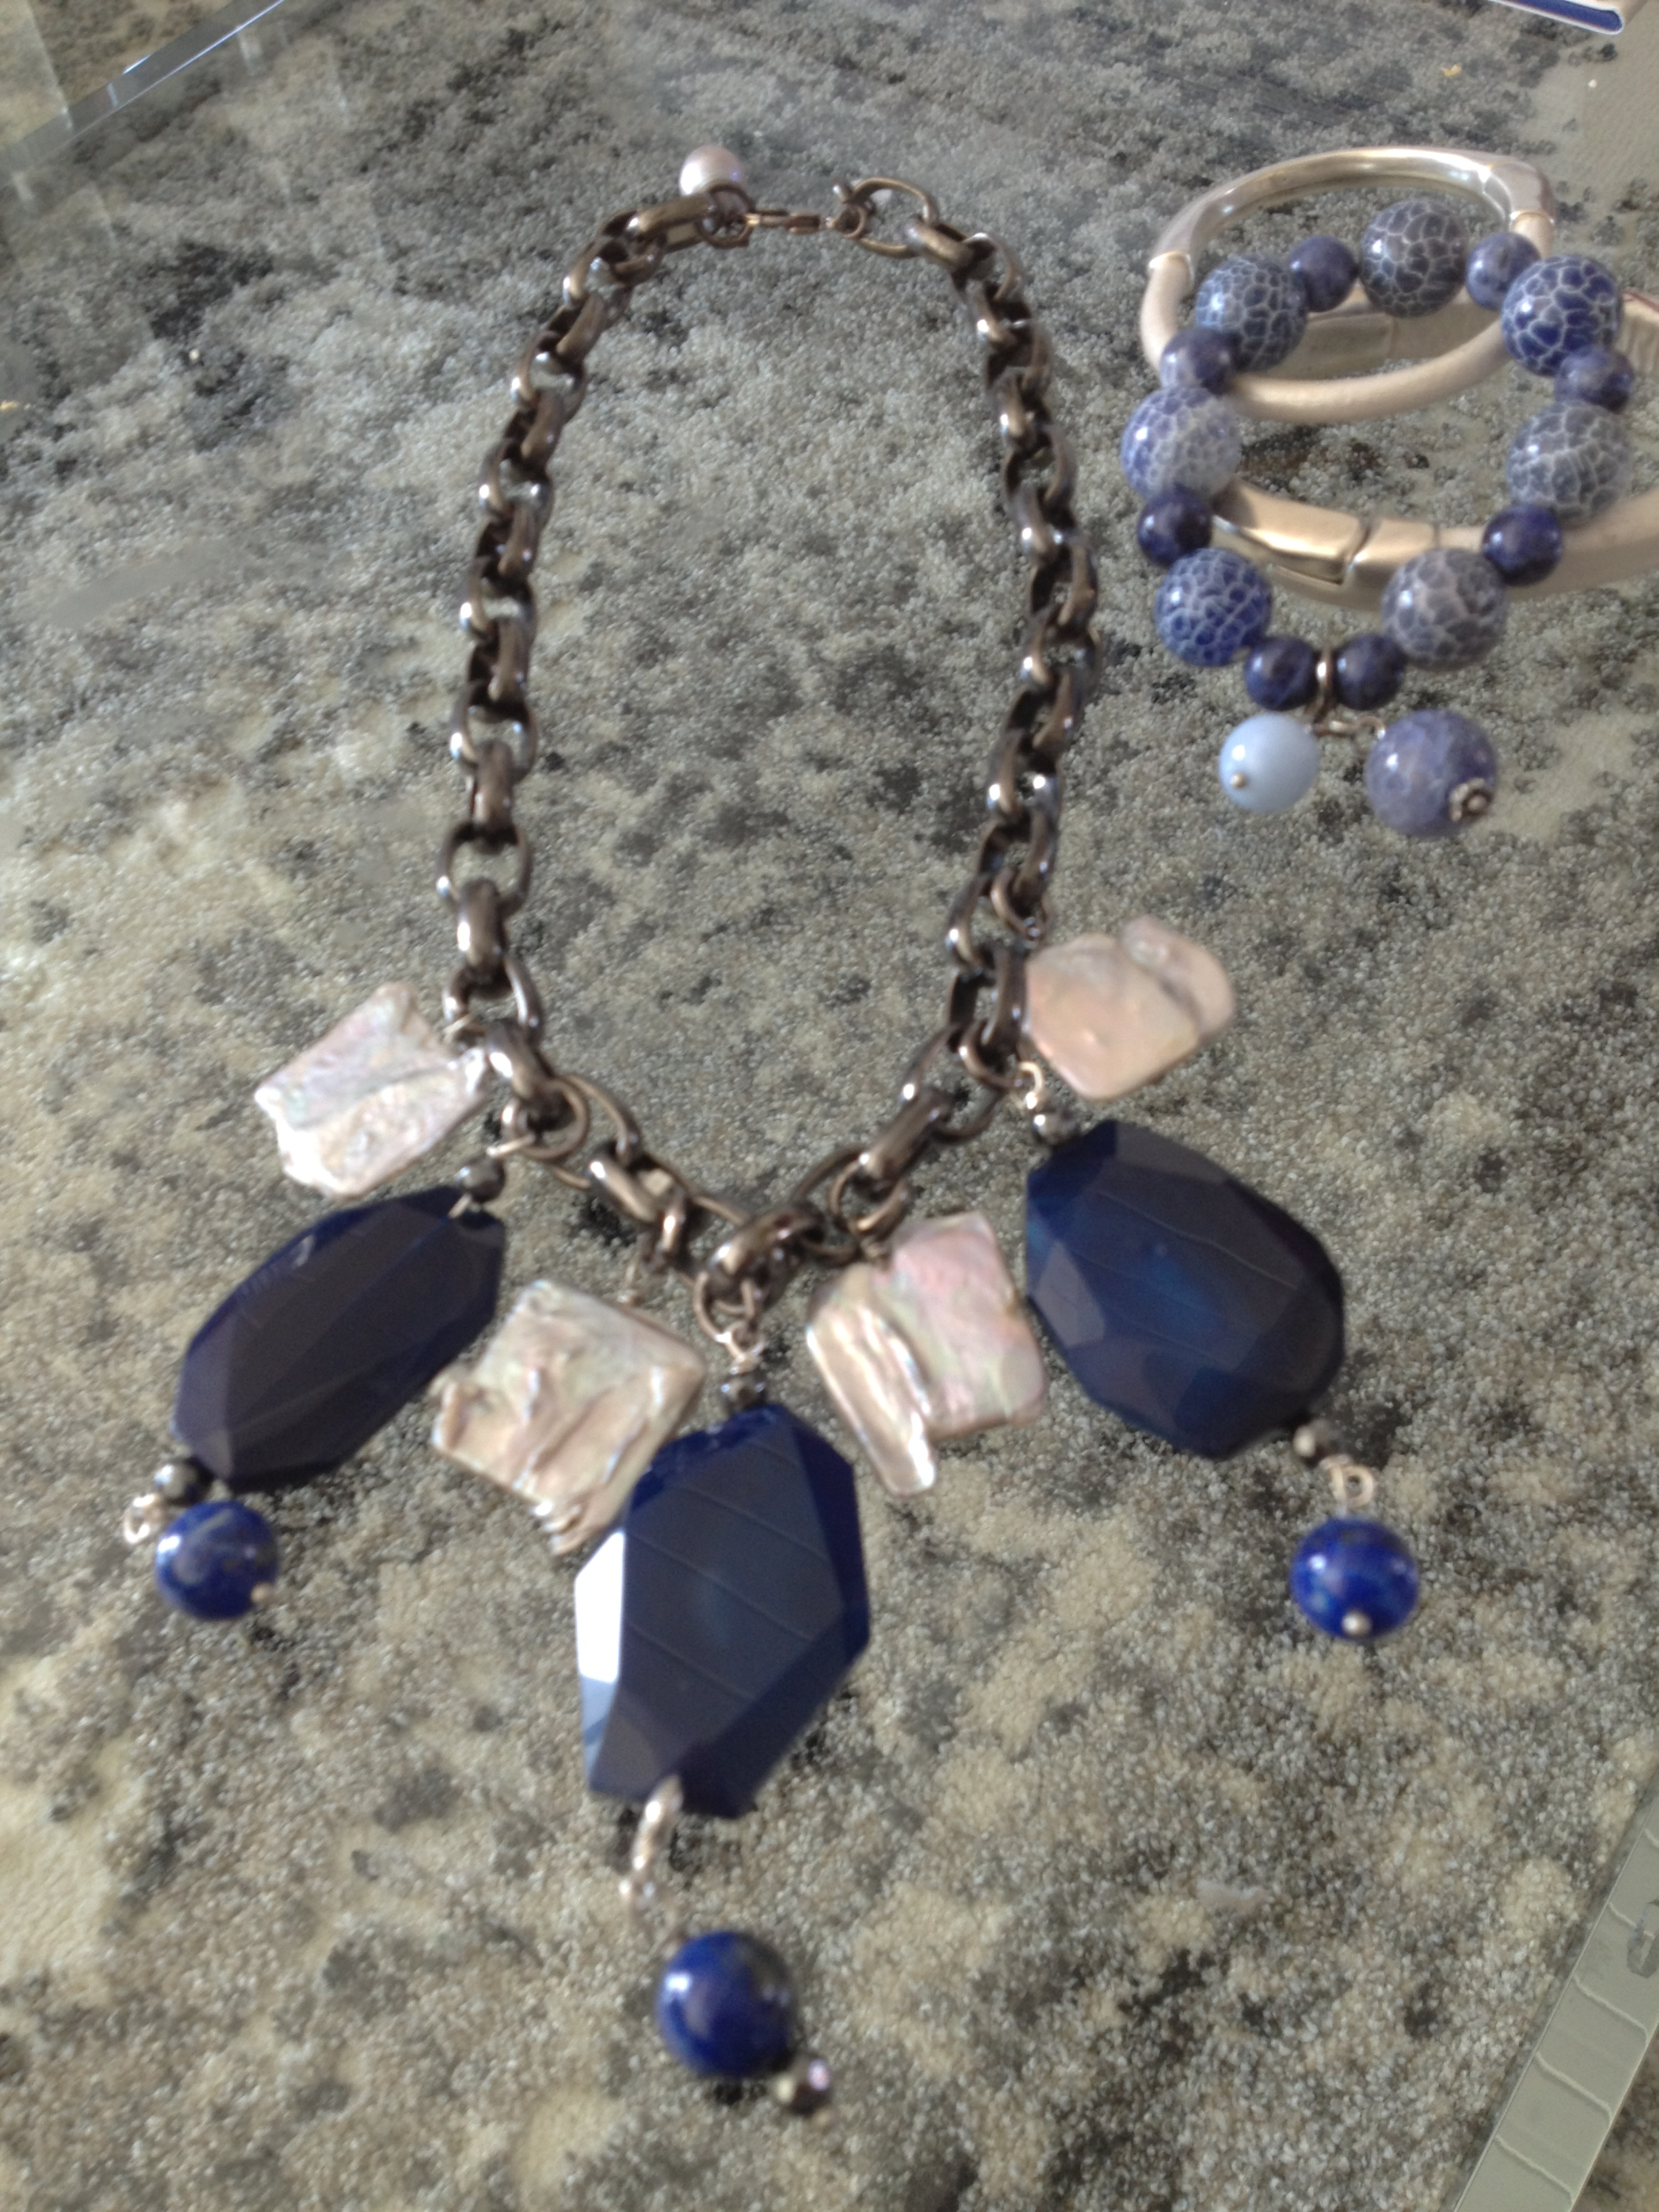 Lapis, agate and pearl necklace on heavy chain Cracked blue ceramic, white jade with rhinestone bracelet Leather and silver bracelets